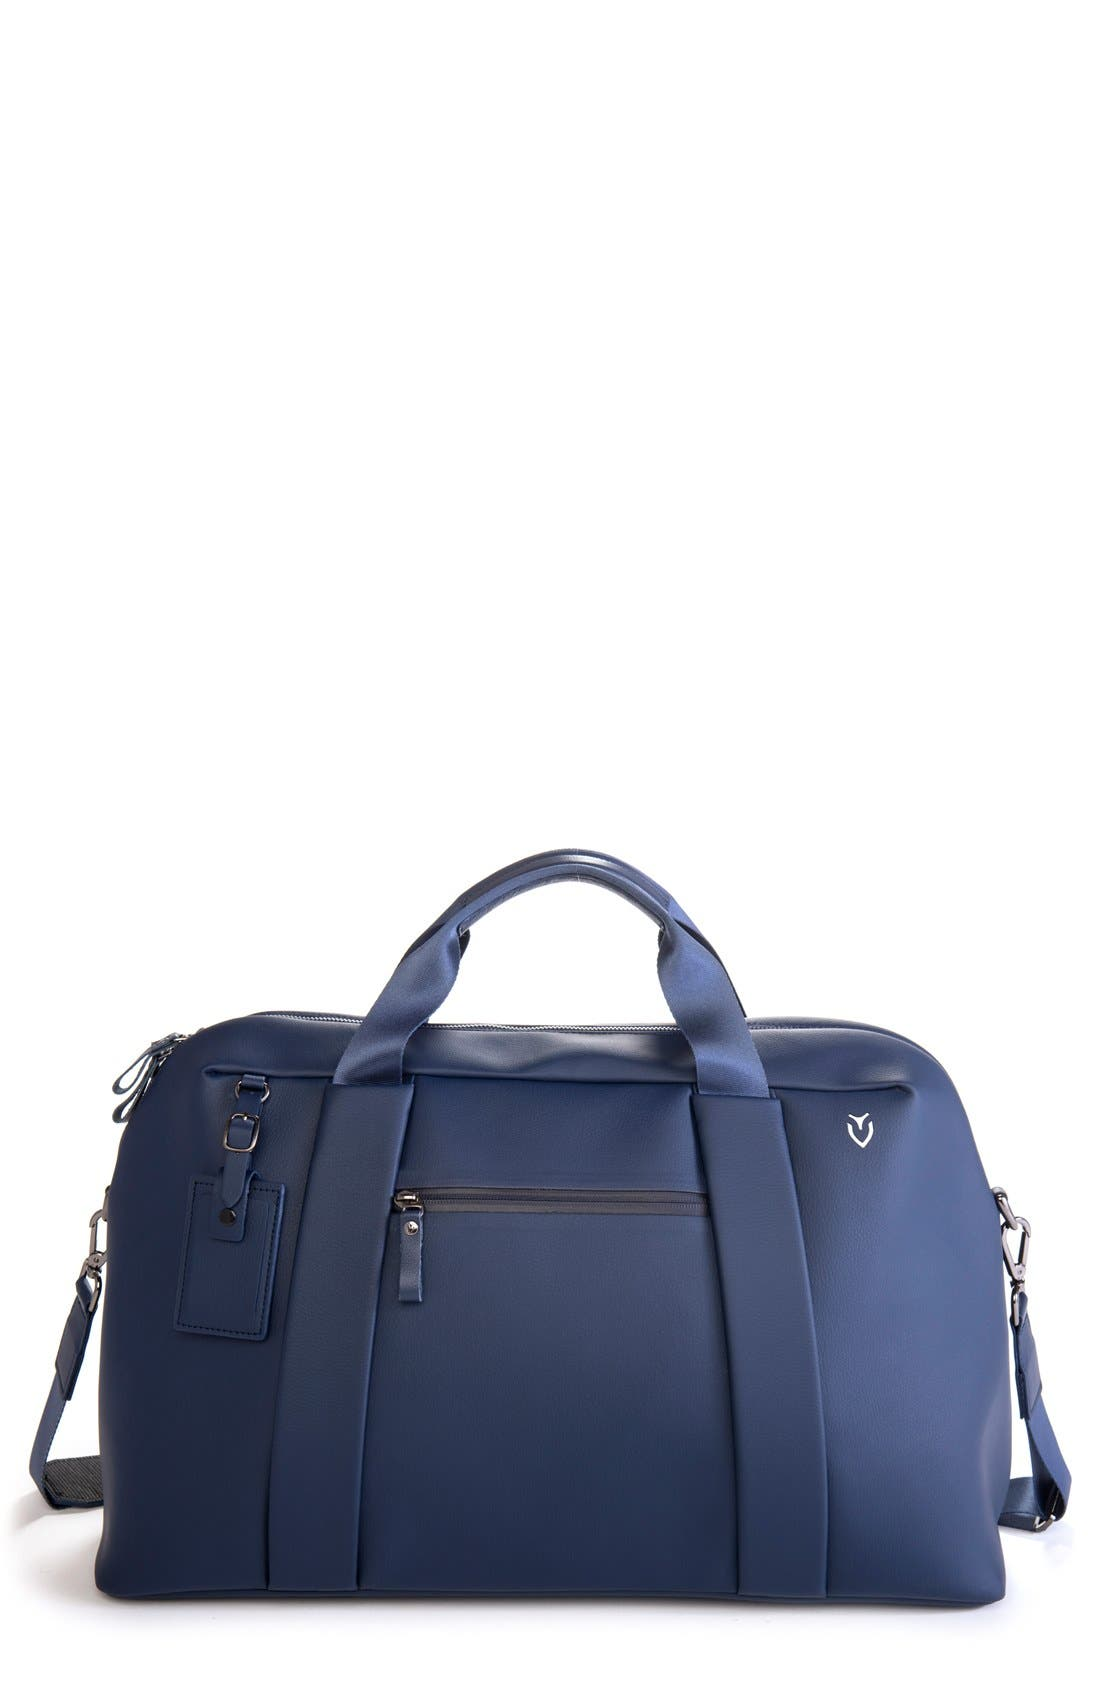 VESSEL Signature Large Duffel Bag